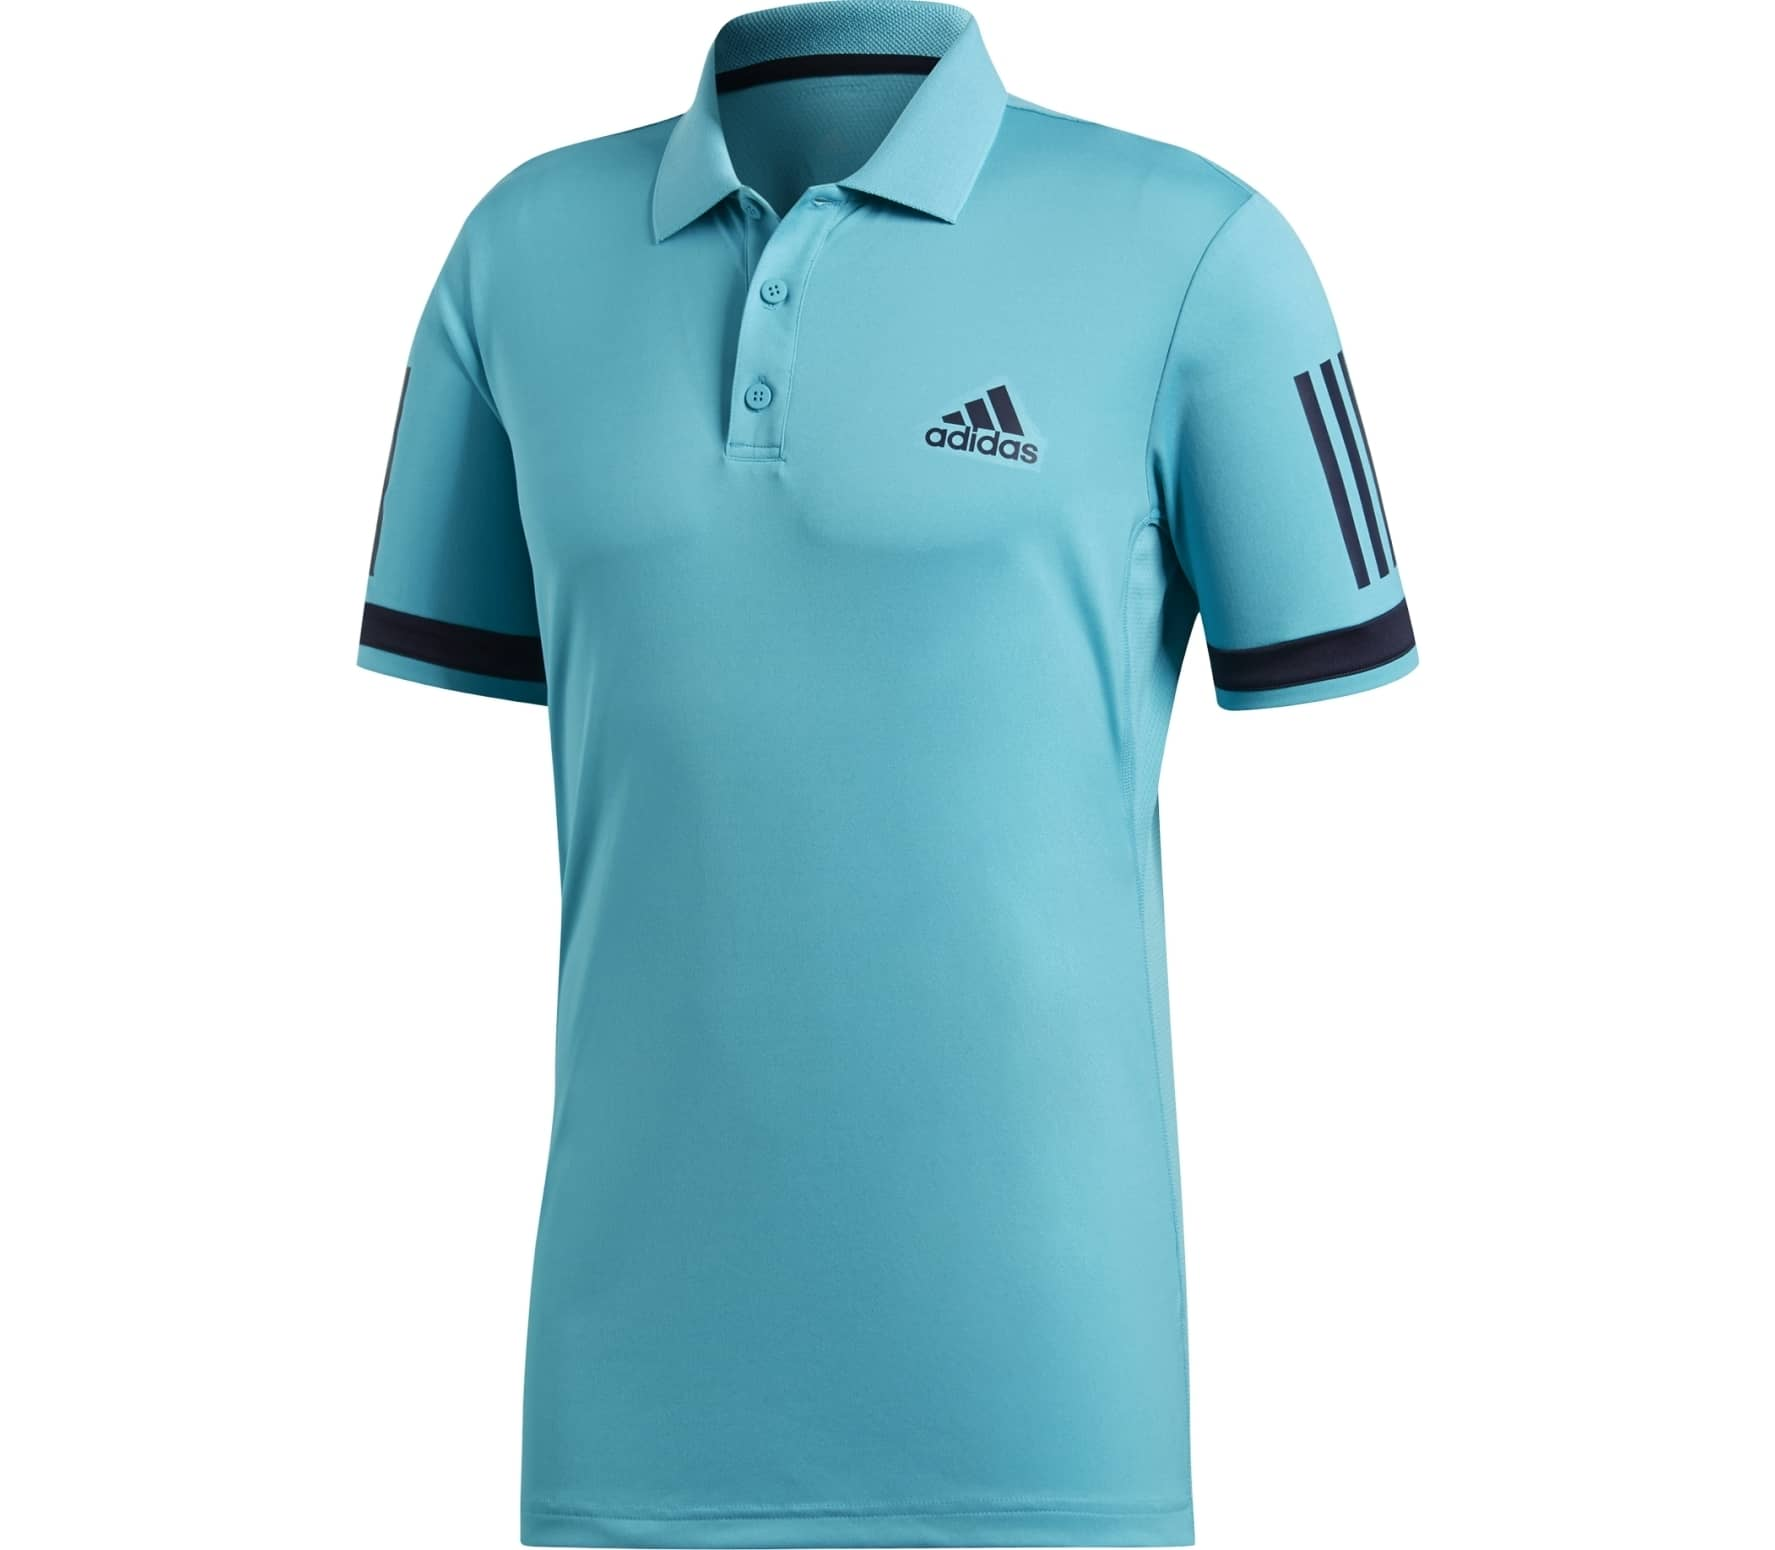 8b2b91faaa adidas performance - Club 3 Stripes men's tennis polo top (turquoise ...